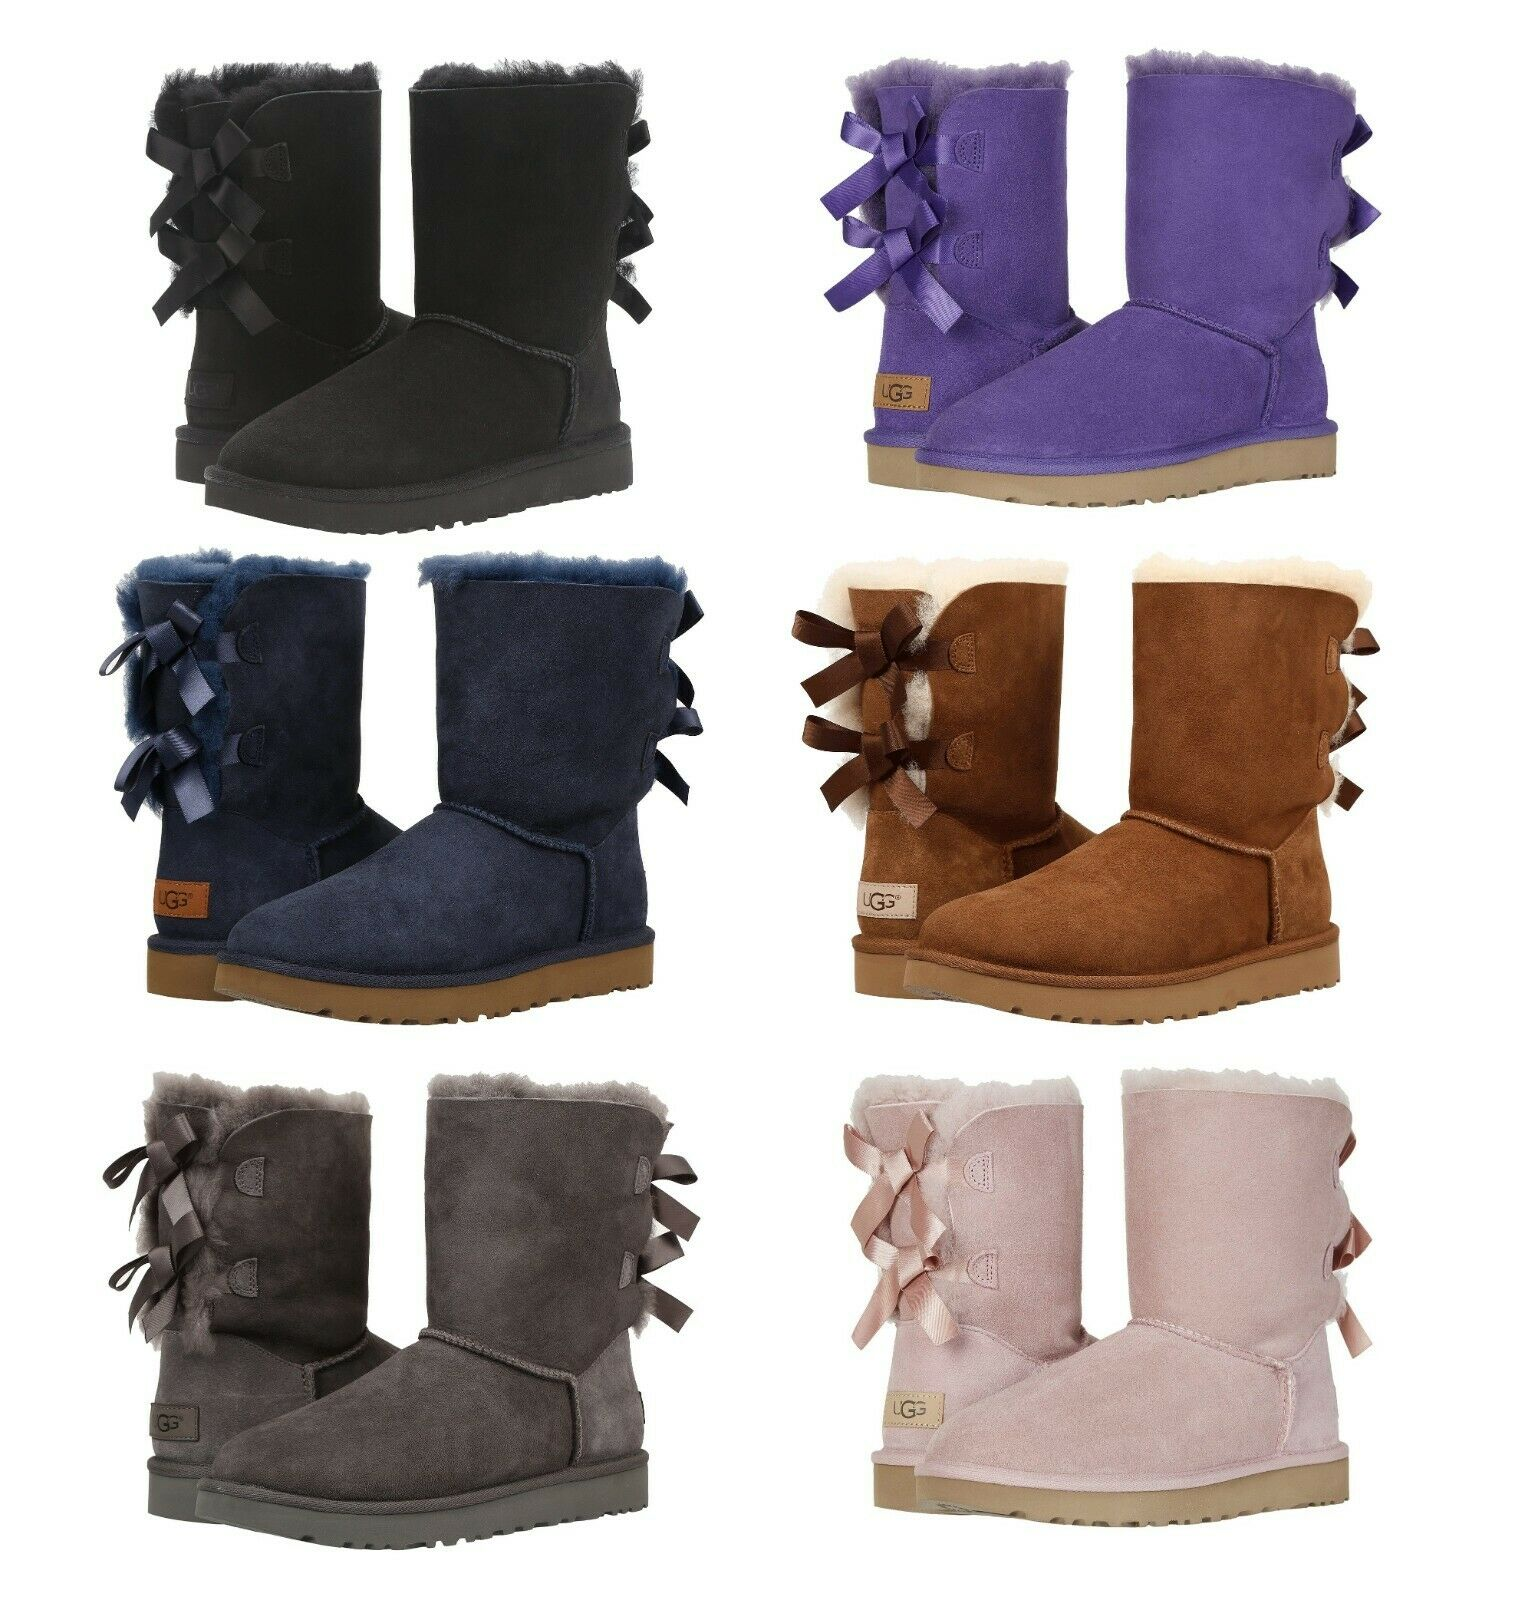 NEW Authentic UGG Women's Bailey Bow II Winter Boots Shoes B